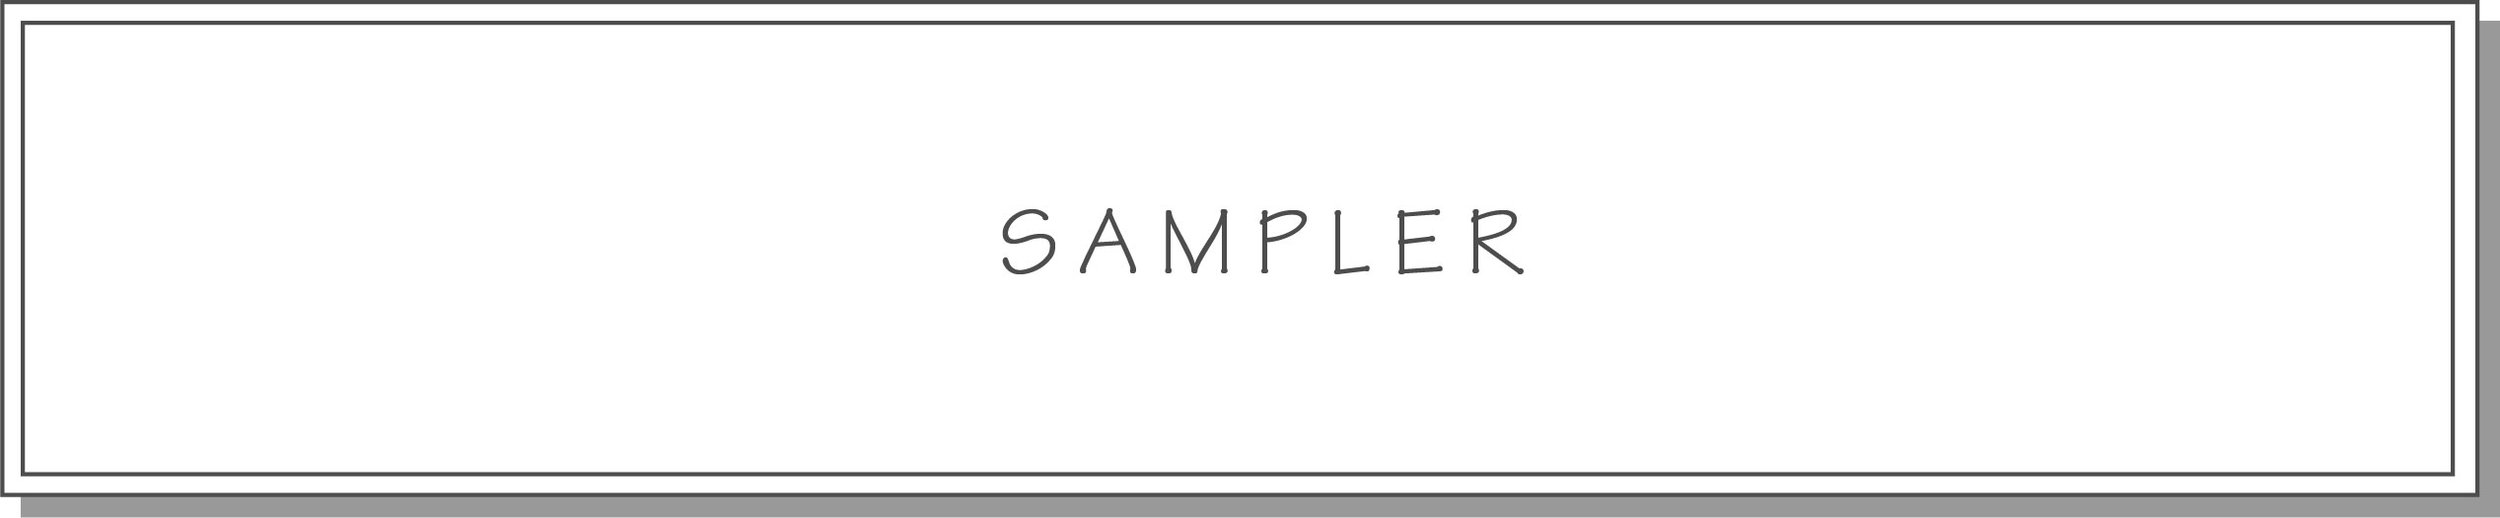 sampler button.jpg